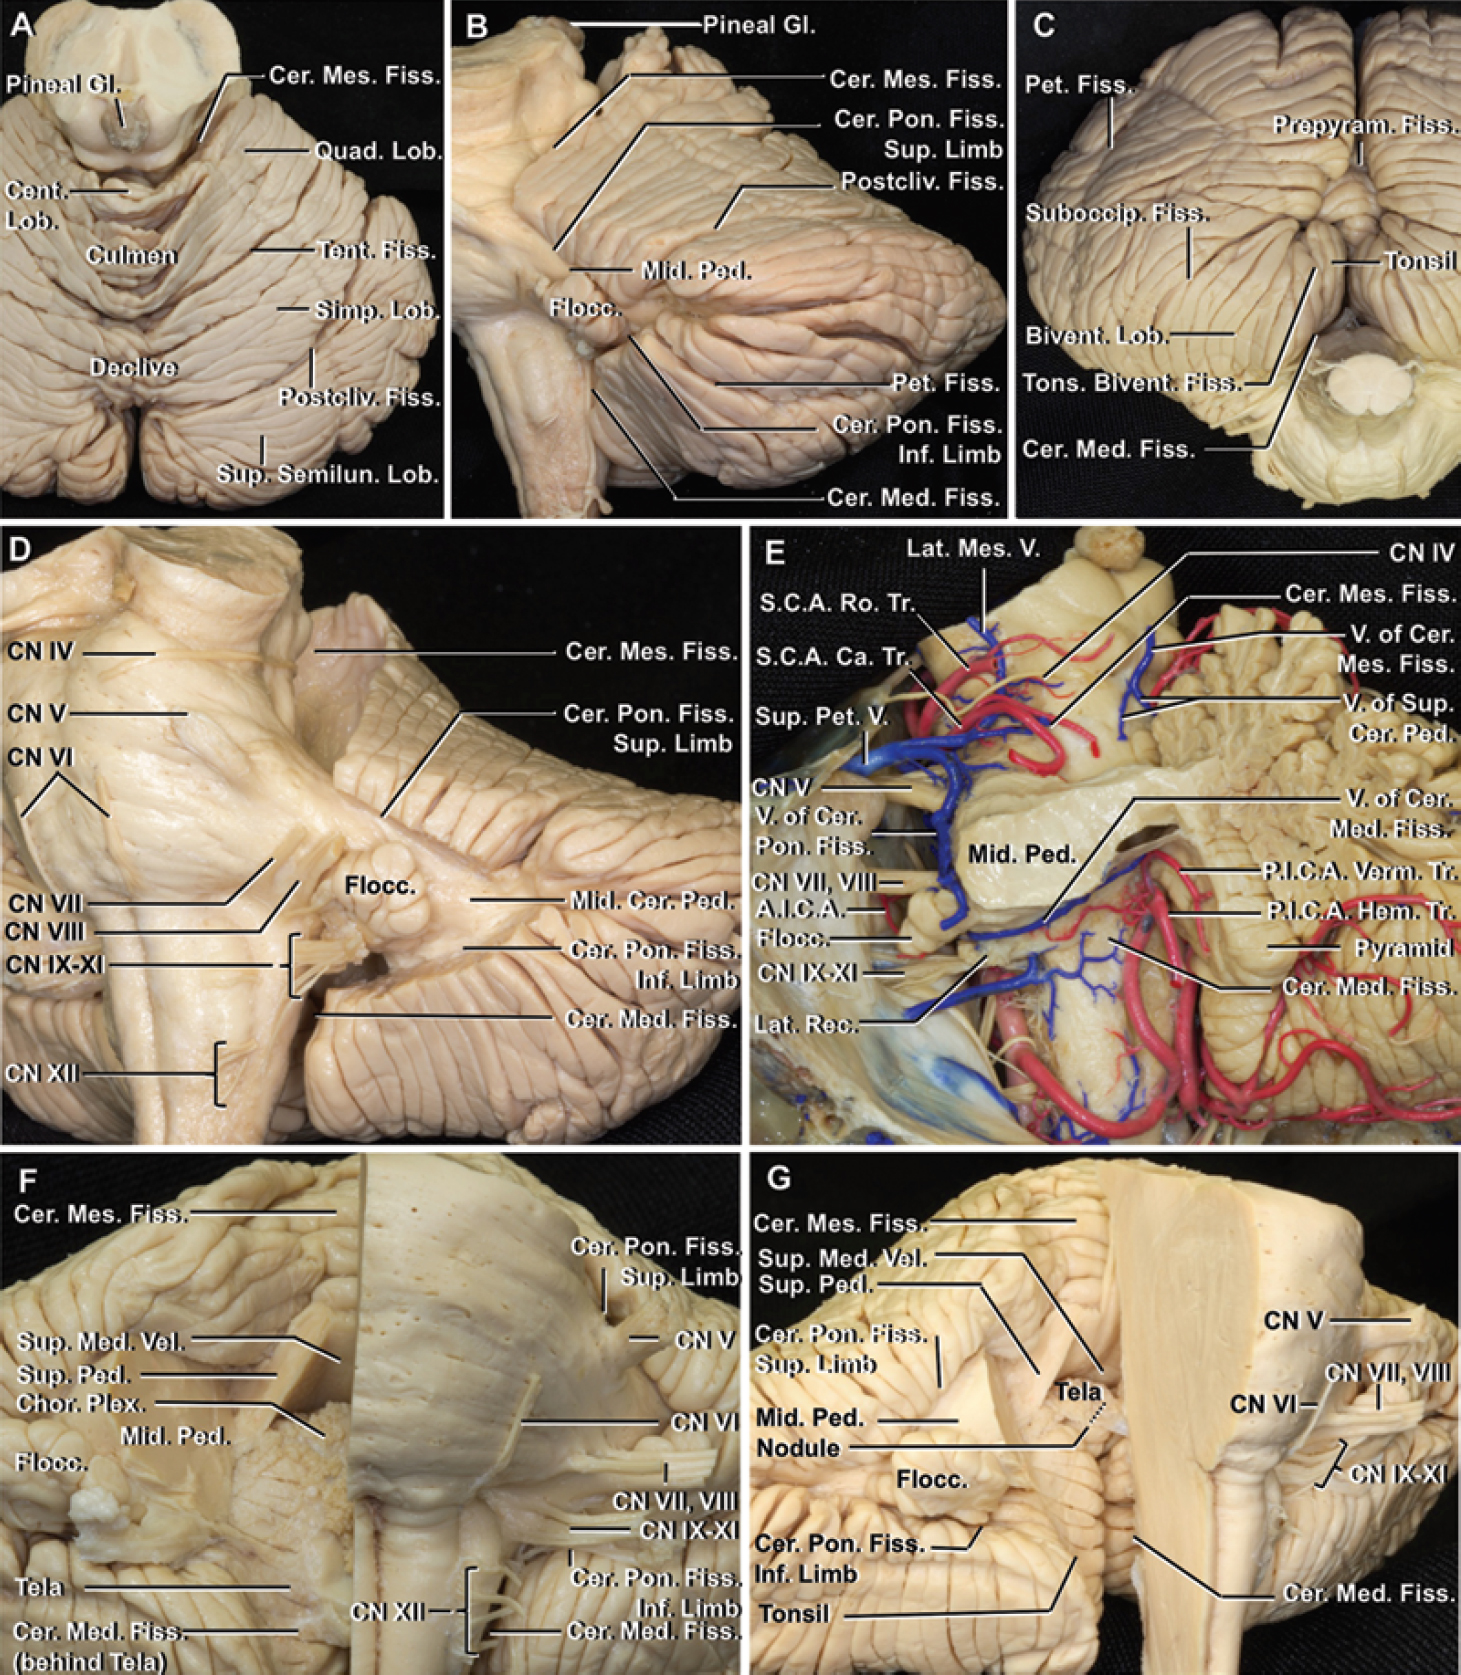 FIG. 1.Cerebellar-brainstem and cerebellar fissures and fourth ventricle.a:The tentorial (primary) and postclival fissures are located on the tentorial surface that faces the lower surface of the tentorium. The cerebellomesencephalic fissure, also referred to as the precentral cerebellar fissure, separates the tentorial surface from the dorsal surface of the midbrain.b:The petrosal surface faces forward toward the posterior surface of the temporal bone and wraps around the pons and the middle cerebellar peduncles to form the superior and inferior limbs of the cerebellopontine fissure. The petrosal (horizontal) and postclival fissures extend laterally and superiorly from the apex of the cerebellopontine fissure. The cerebellopontine fissure is continuous with the cerebellomesencephalic fissure superiorly and cerebellomedullary fissure inferiorly.c:The suboccipital surface, exposed in the suboccipital operative approaches and located below and between the sigmoid and transverse sinuses, is the site of the suboccipital fissure, which has a vermian part called the prepyramidal fissure, and a hemispheric part referred to as the prebiventral and tonsillobiventral (secondary) fissures. The cerebellomedullary fissure separates this surface from the medulla.d:Removing the cerebellar margin of the 3 cerebellar-brainstem fissures exposes the interior of the fissures and the areas of communication between these fissures.e:Posterolateral view. Removing the left half of the cerebellum exposes the 3 cerebellar-brainstem fissures and major vessels in these fissures.F:The right half of the brainstem has been removed to provide an anterior view of the cerebellomesencephalic and cerebellomedullary fissures, and the roof of the fourth ventricle formed, from rostral to caudal, by the superior and inferior medullary vela, and the tela choroidea, in which the choroid plexus arises.g:Removing the tela choroidea in the roof of the fourth ventricle exposes the surface of the nodule and tonsi